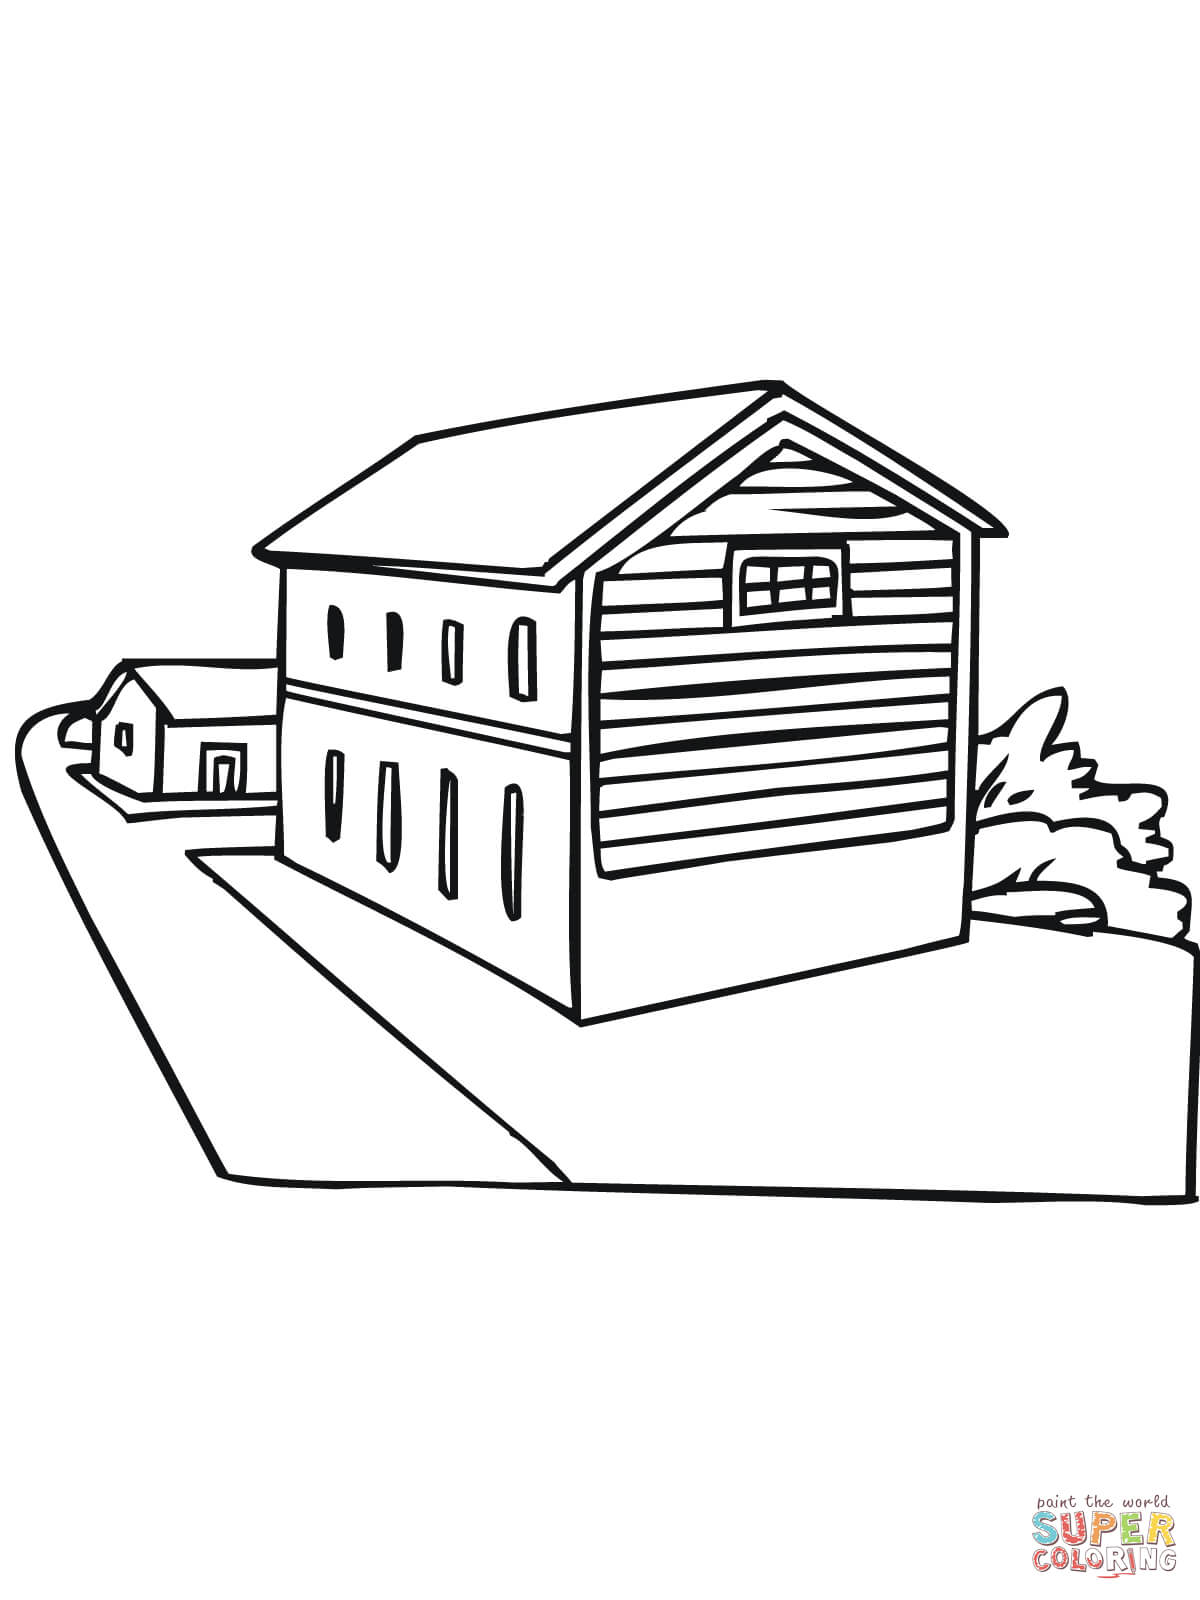 Norway Typical House Coloring Online